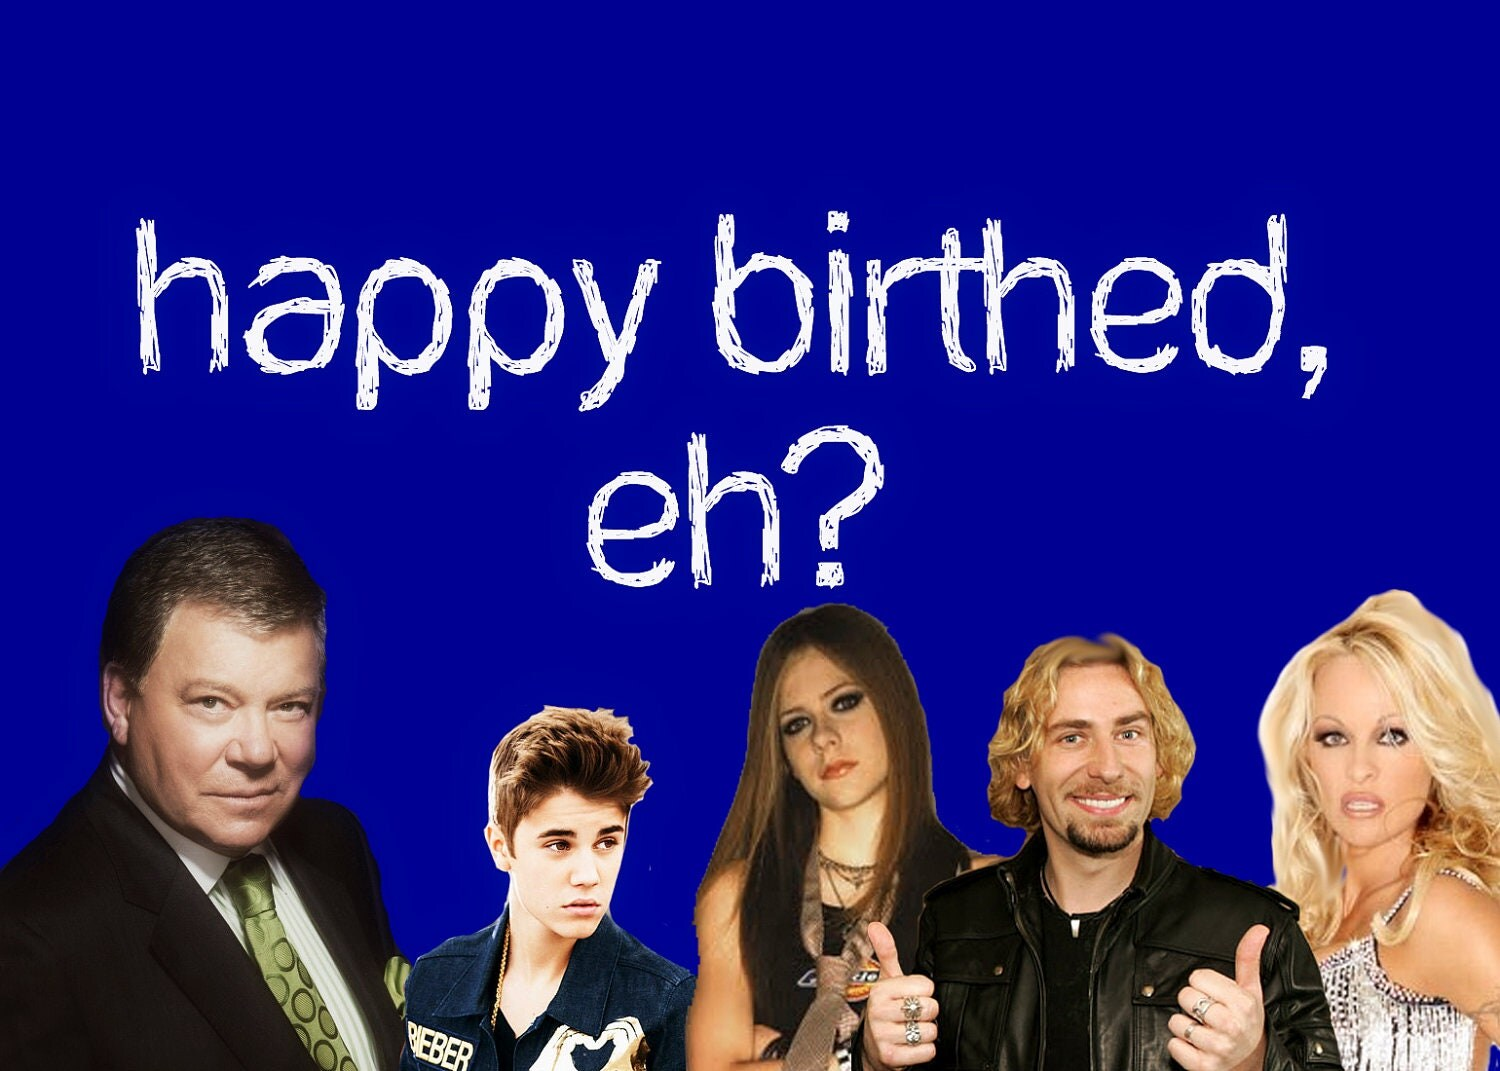 Famous Canadian Birthday Card Bieber Shatner Nickelback – Birthday Cards Canada